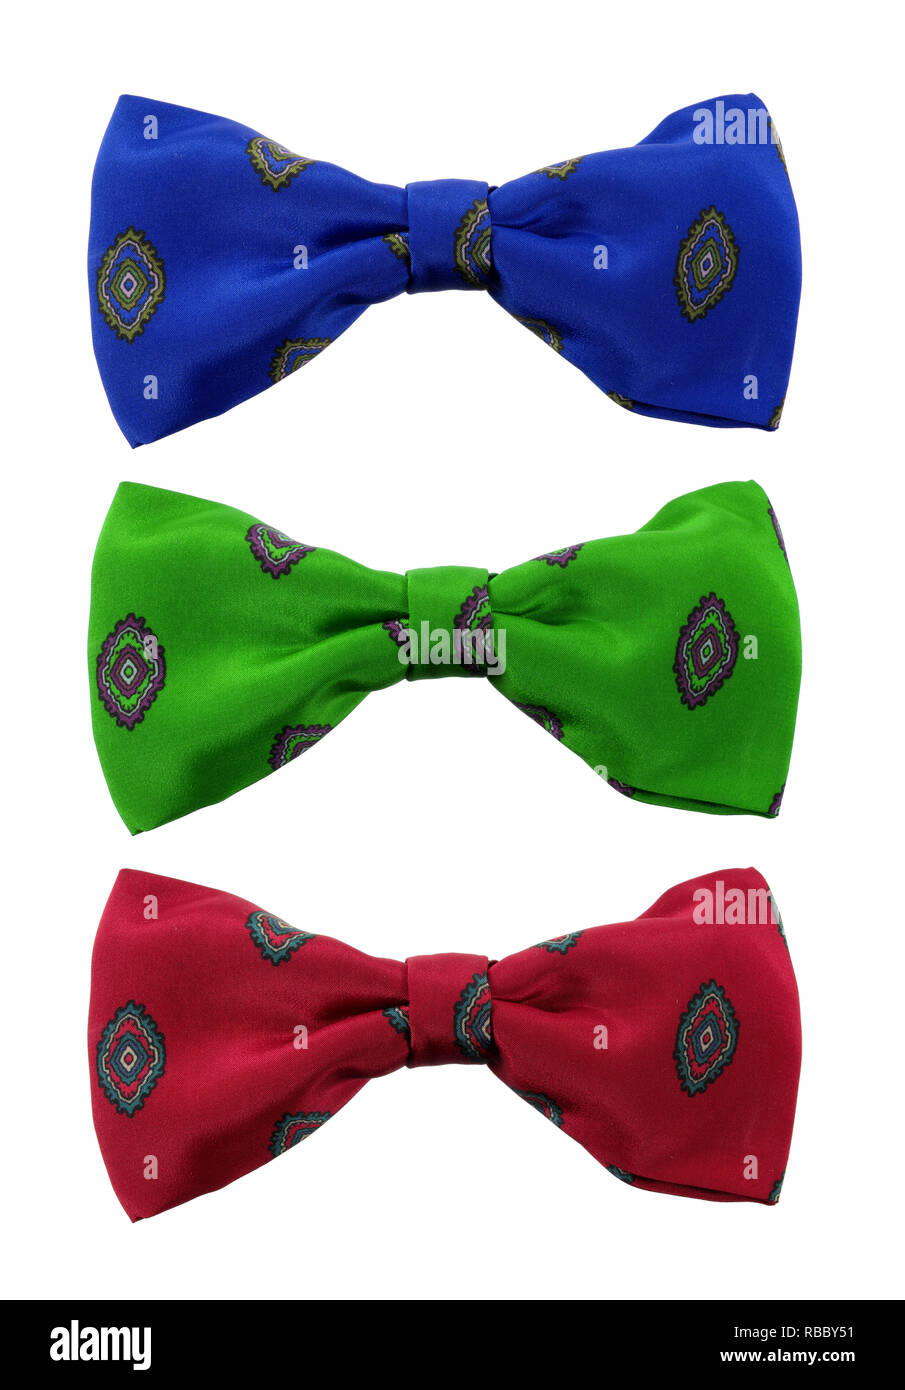 Bow Ties on White Background - Stock Image